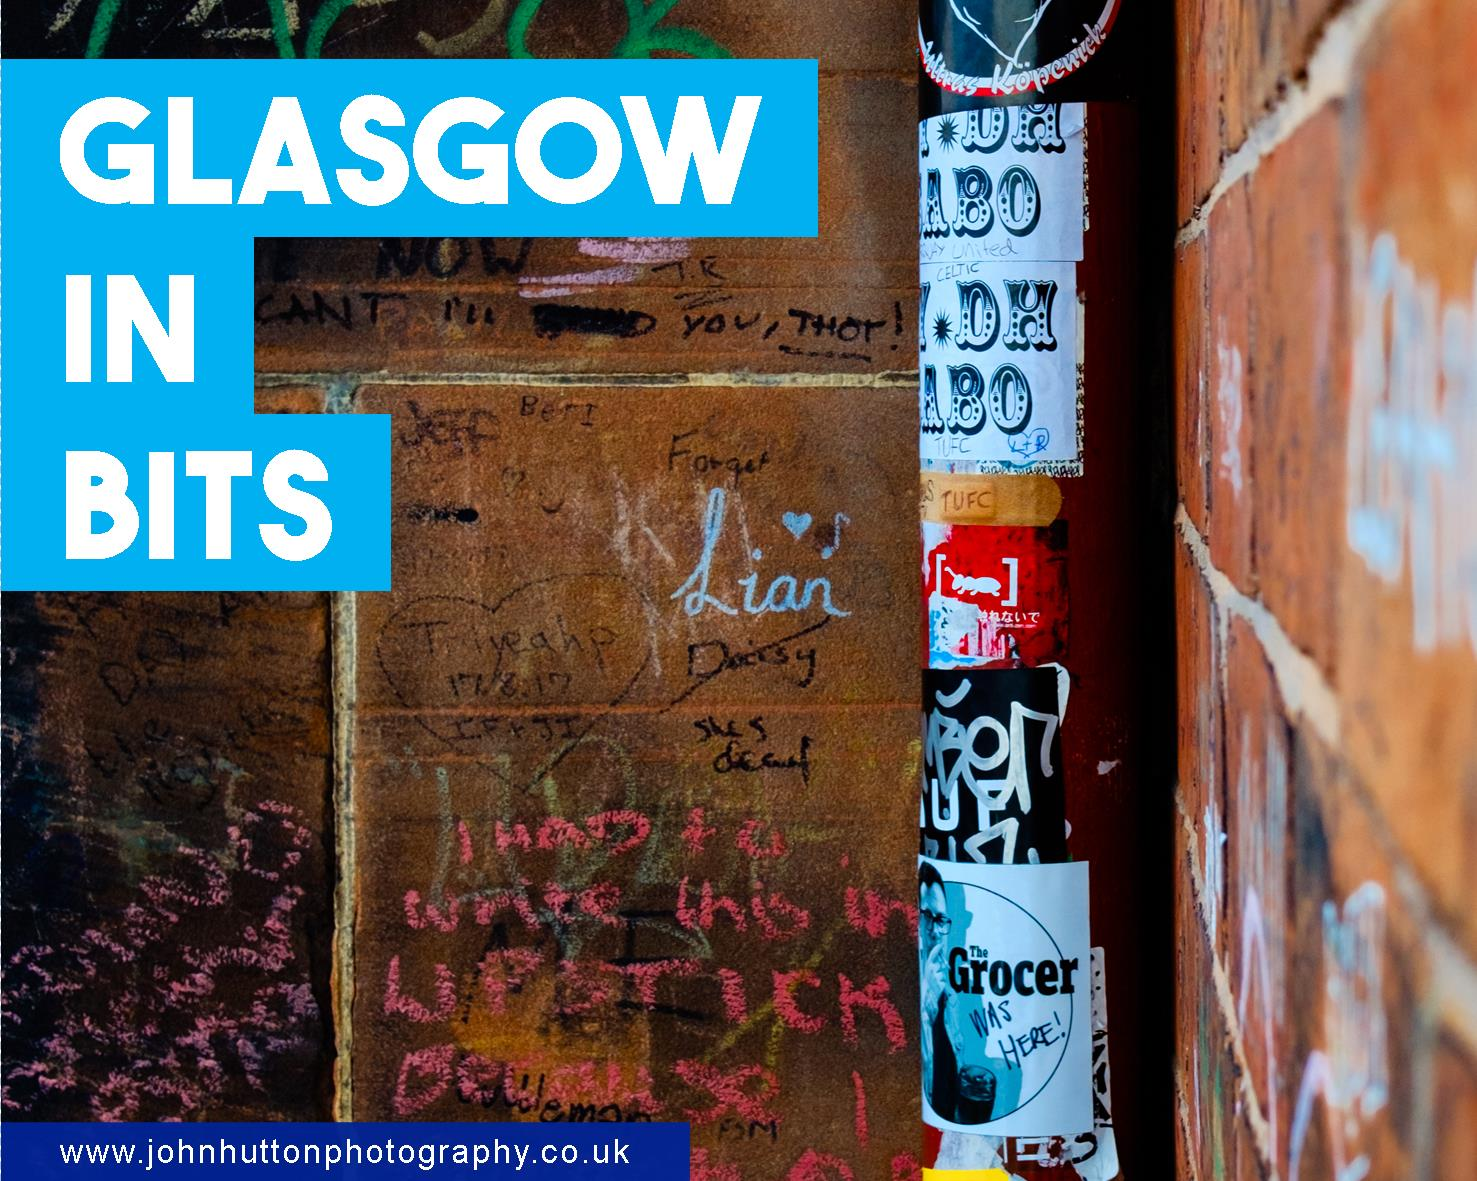 Glasgow in Bits - front cover.jpg